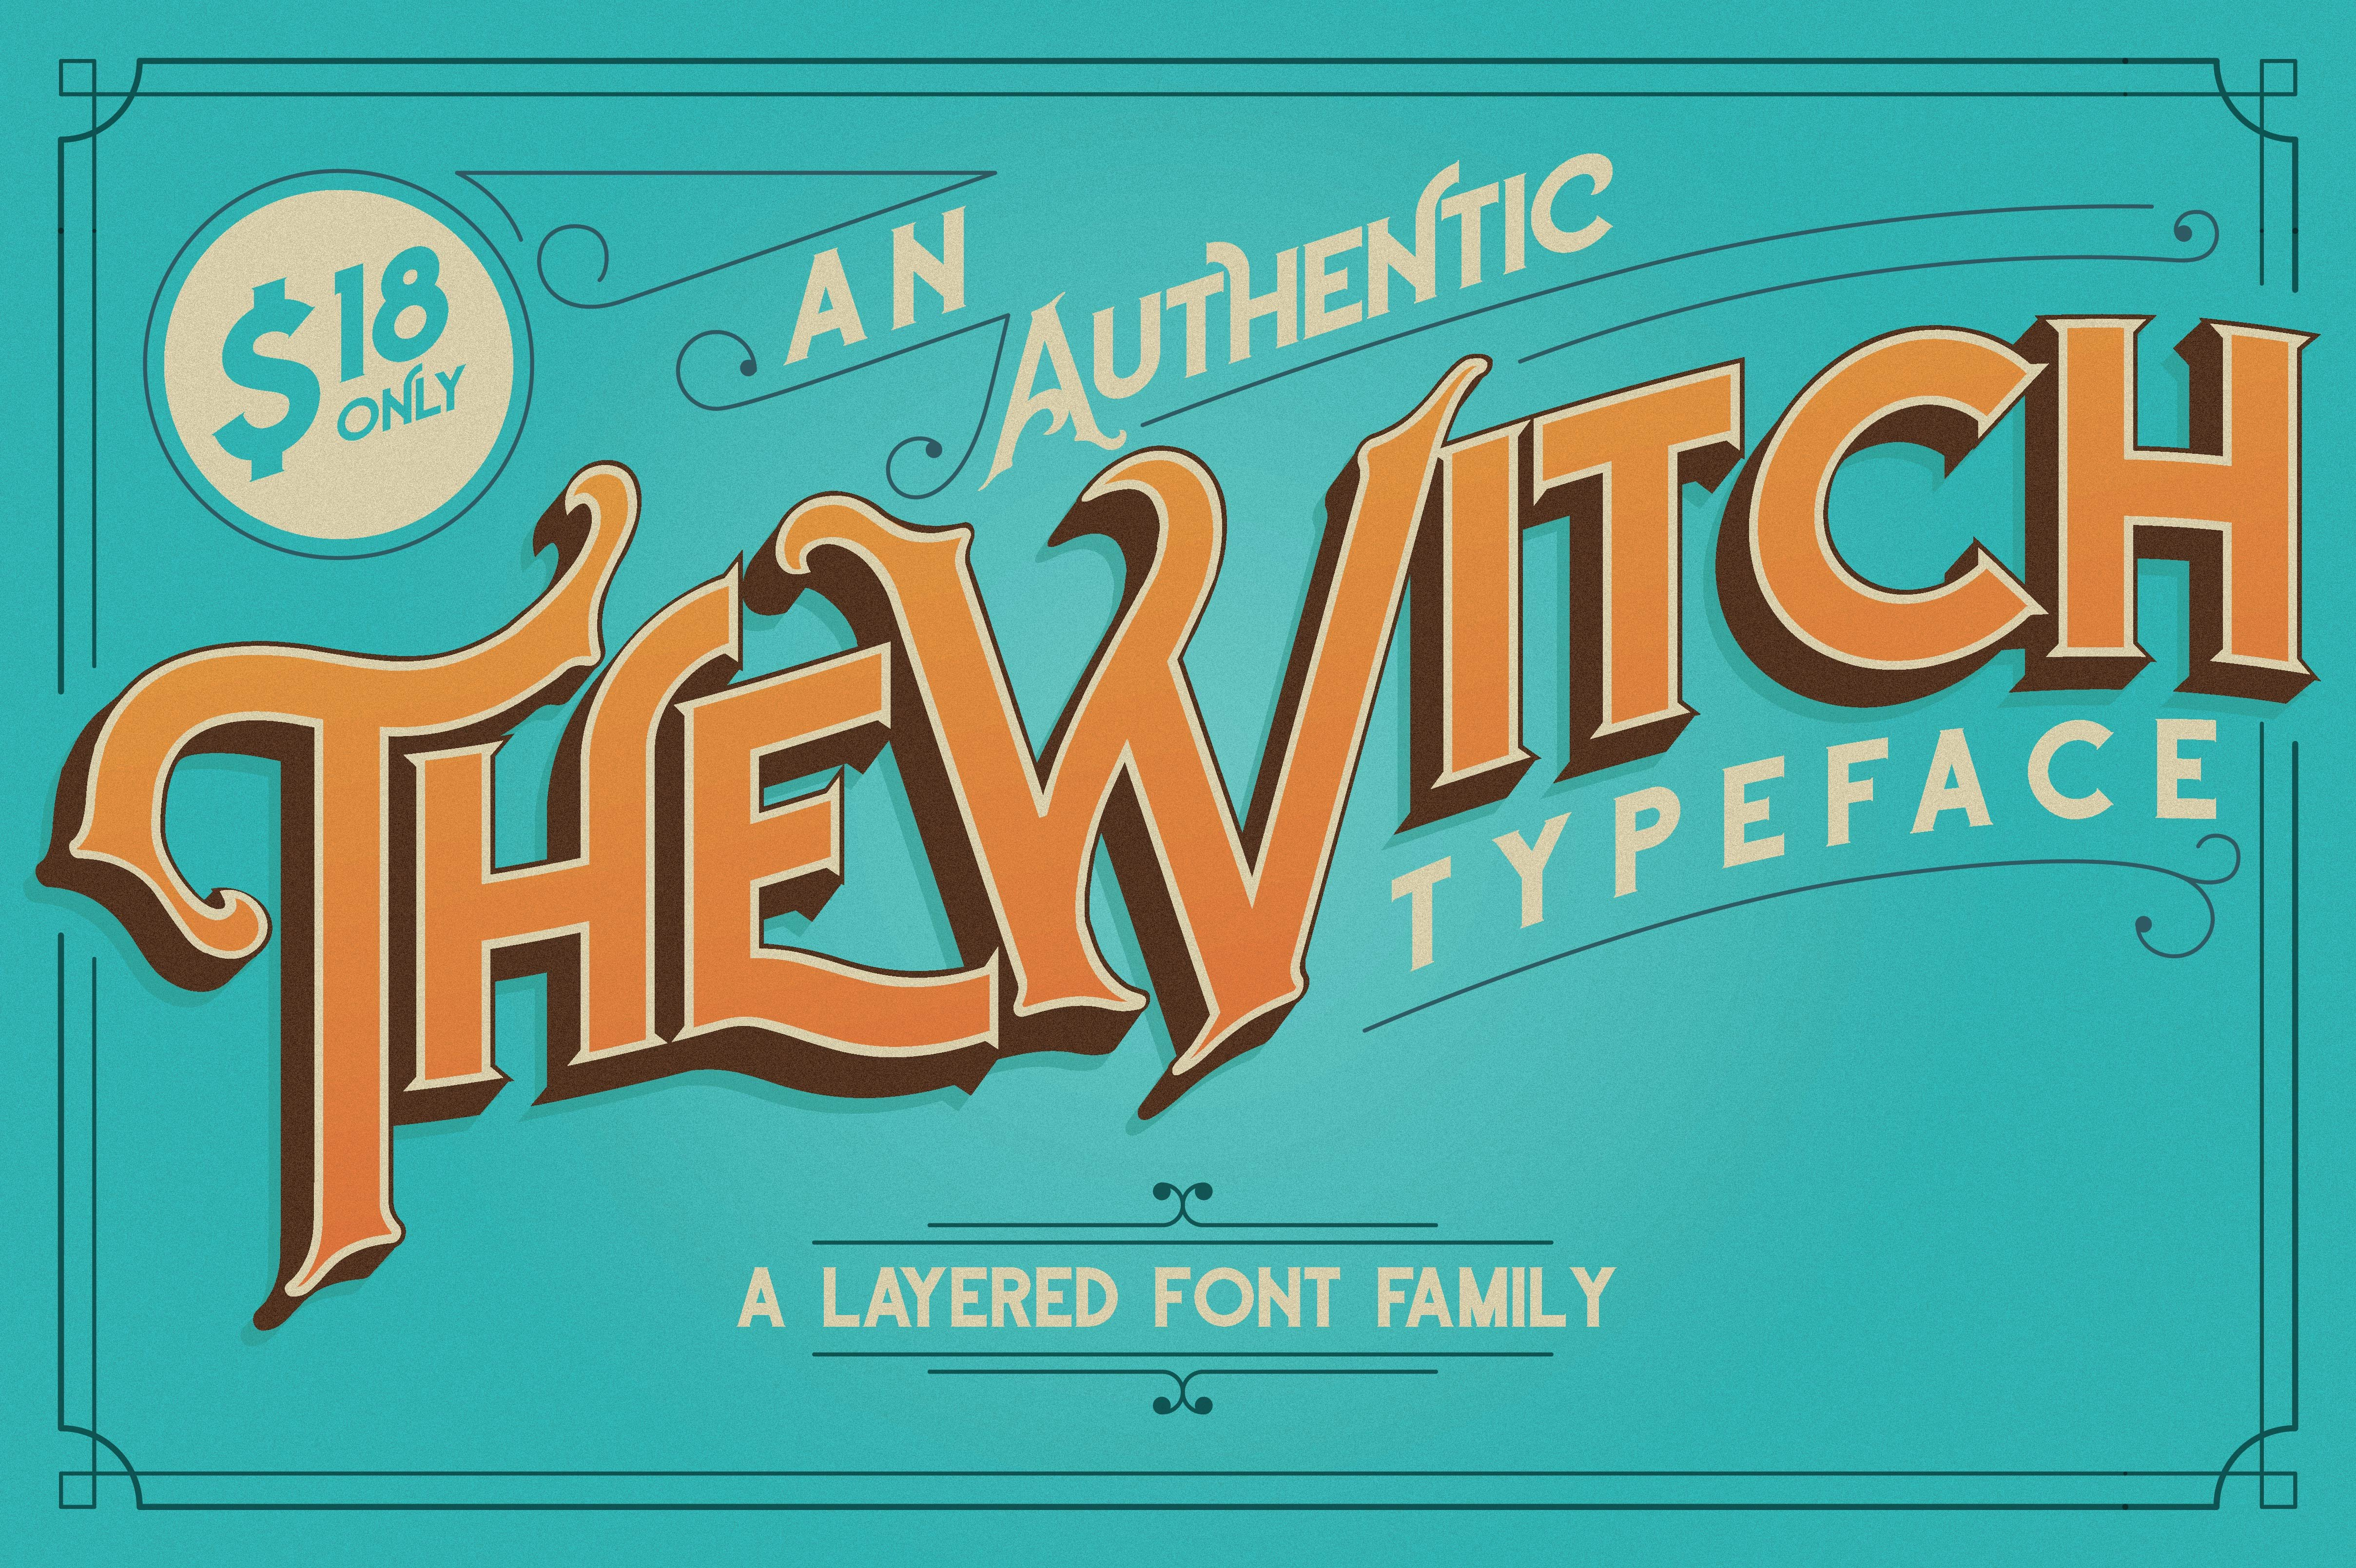 Witch Photos, Graphics, Fonts, Themes, Templates ~ Creative Market